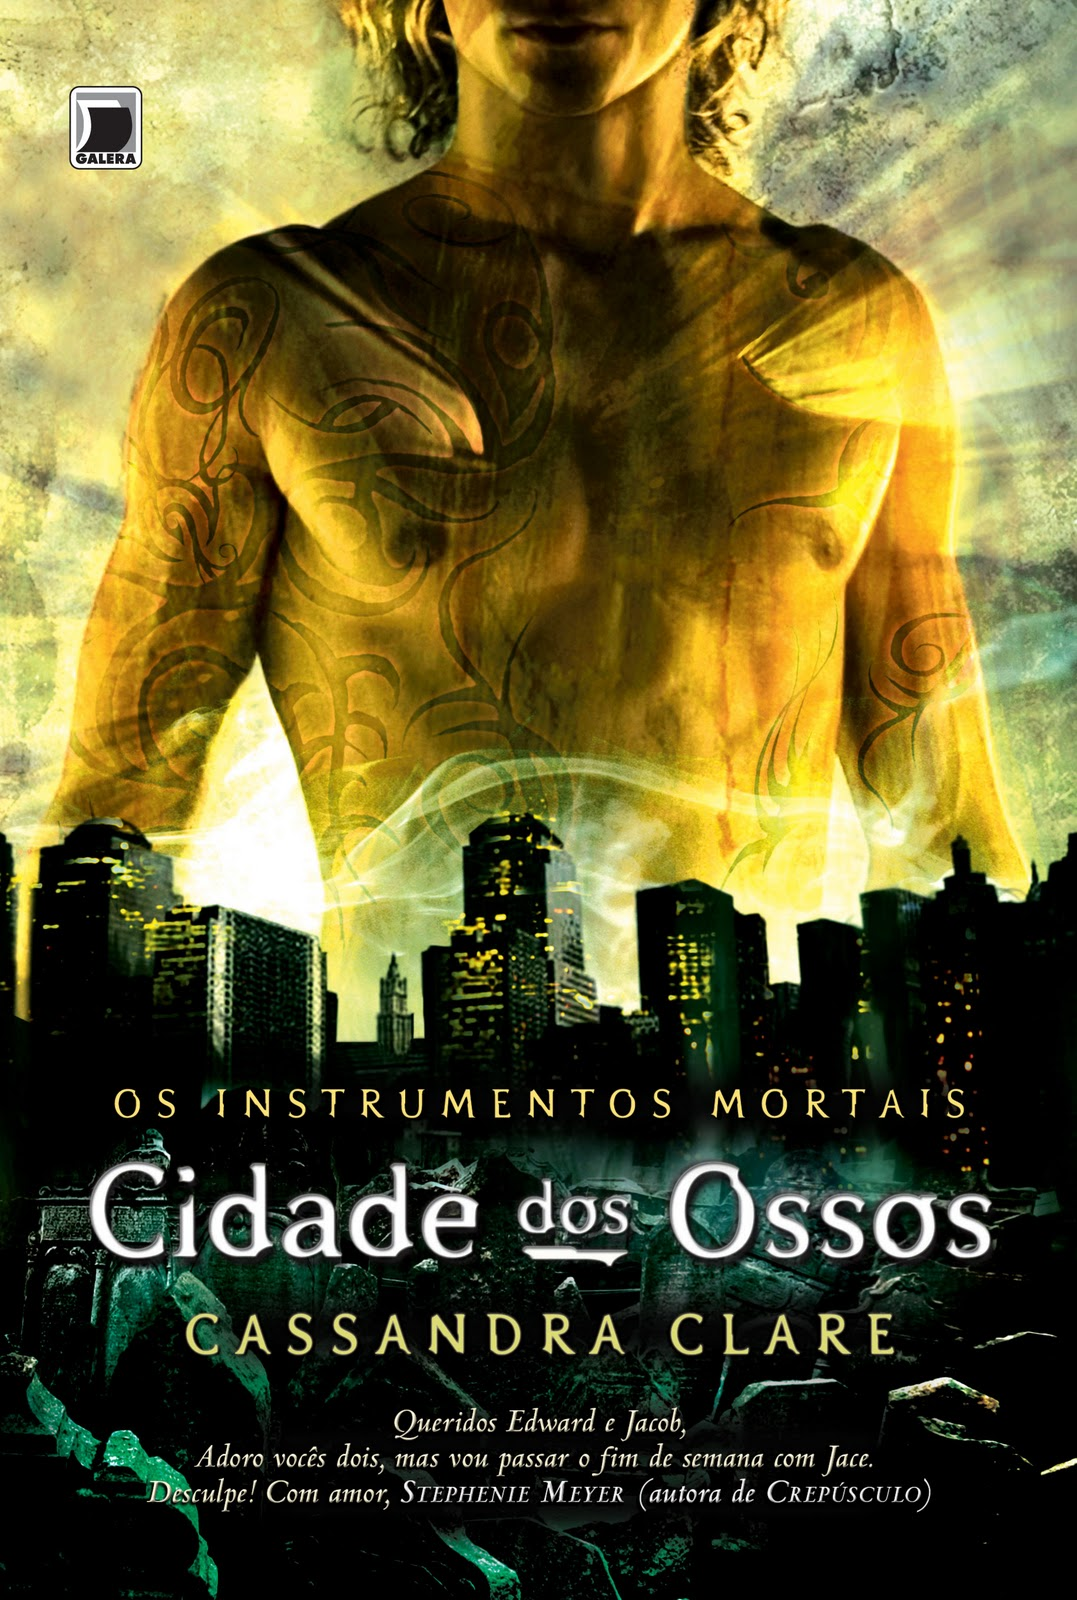 Os Instrumentos Mortais – Cidade dos Ossos BDRip XviD Dual Audio Dublado – Torrent